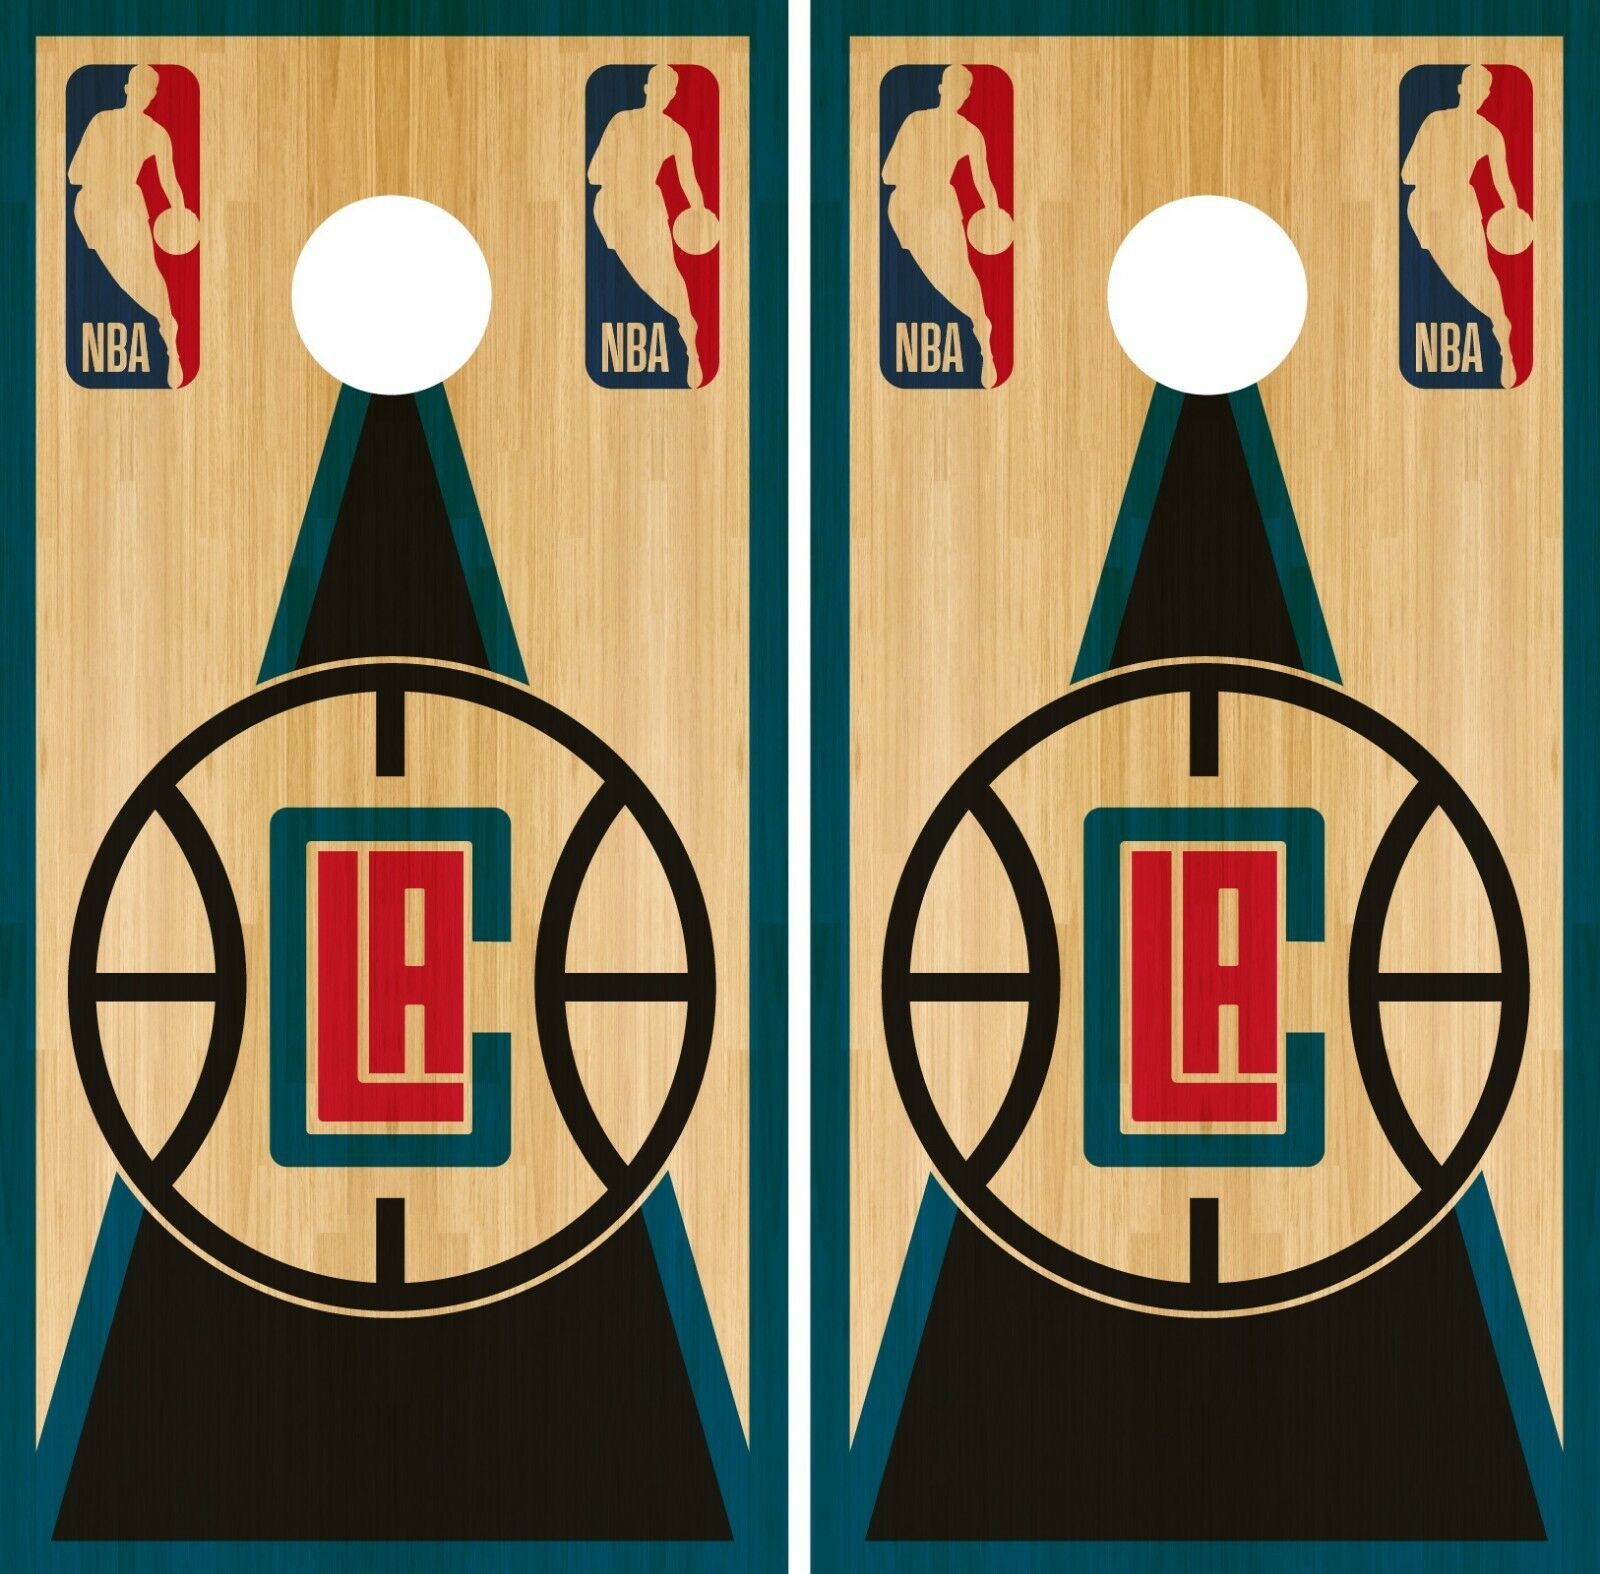 LA Clippers  Cornhole Wrap NBA Vintage Game Board Skin Set Vinyl Decal CO624  to provide you with a pleasant online shopping